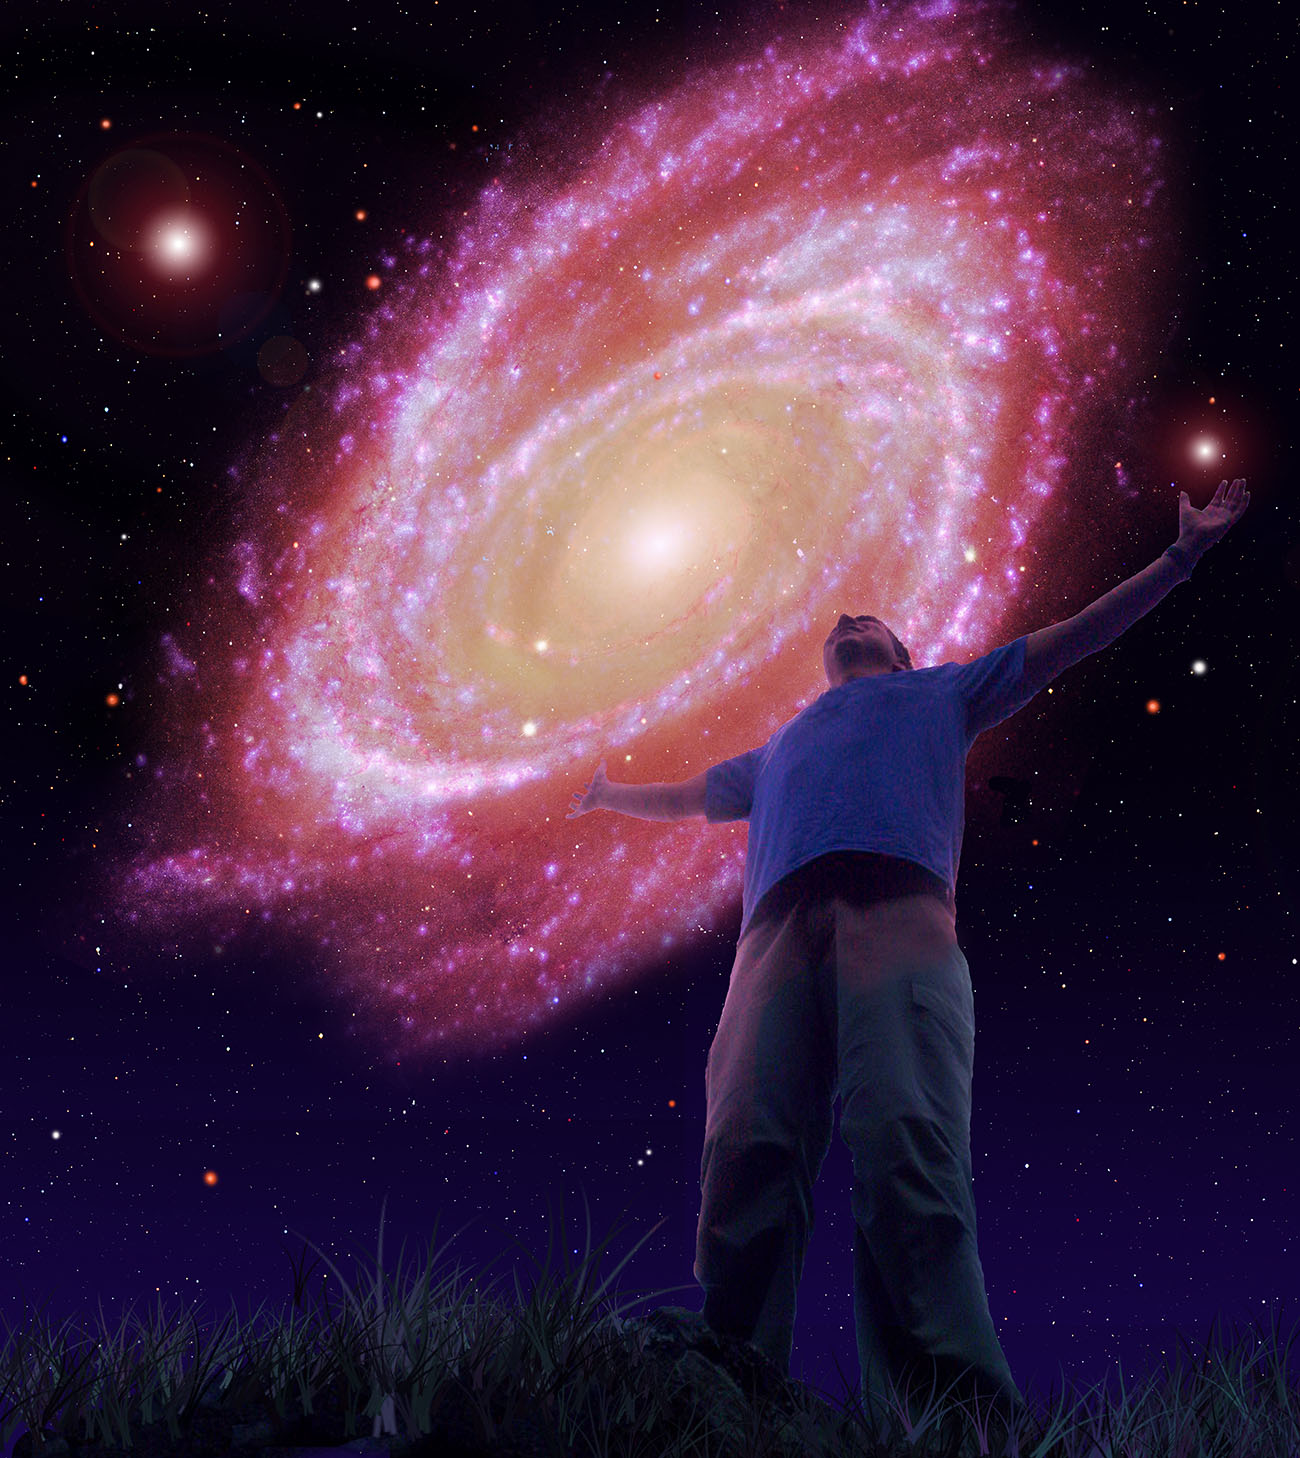 Are we Creation of the Universe, or is Consciousness the Real Creator?